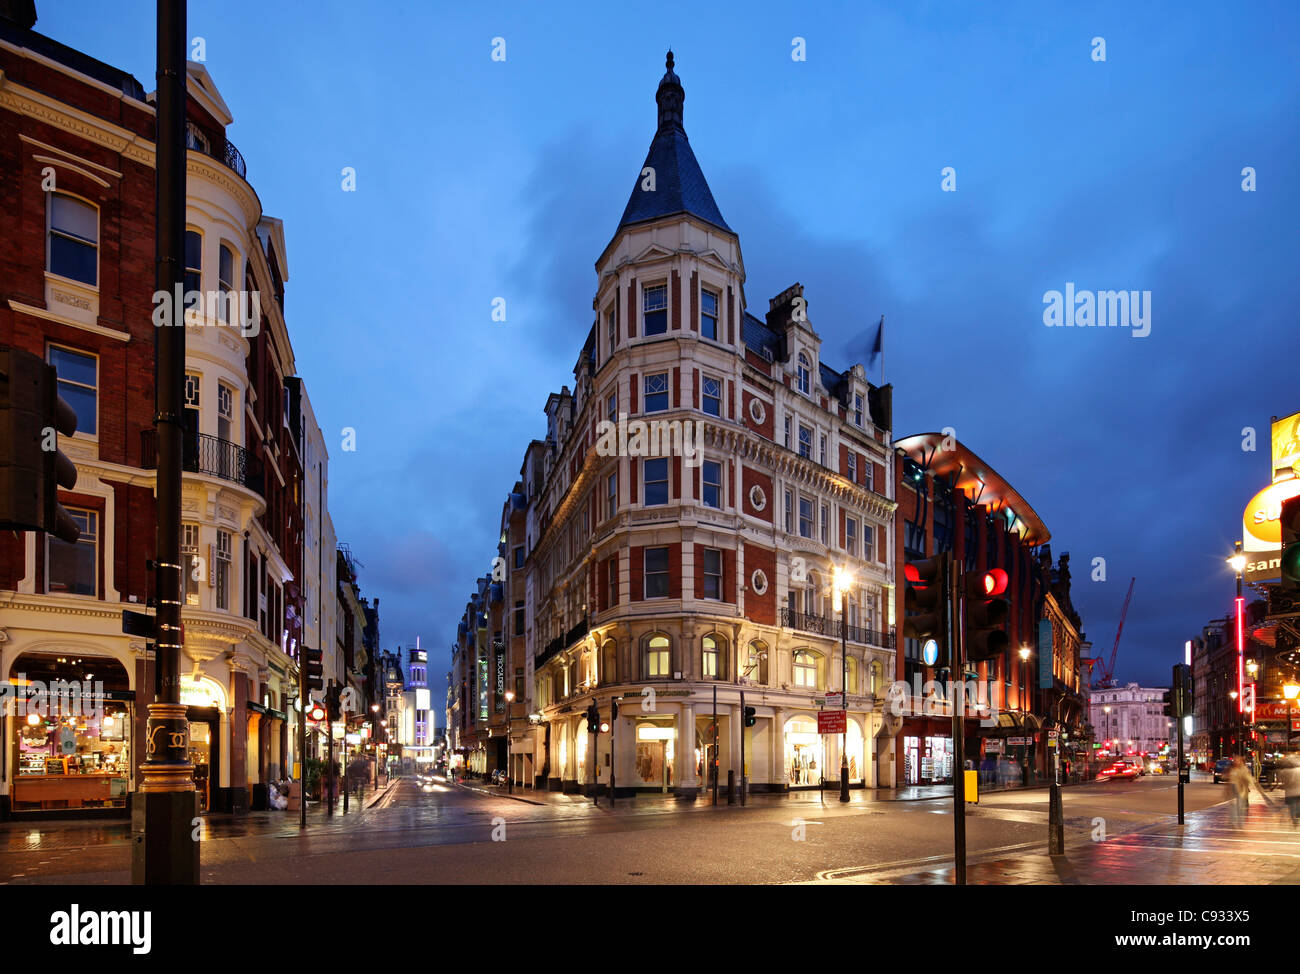 The Shaftesbury Avenue is home of some of the major theatres in London's West End. - Stock Image